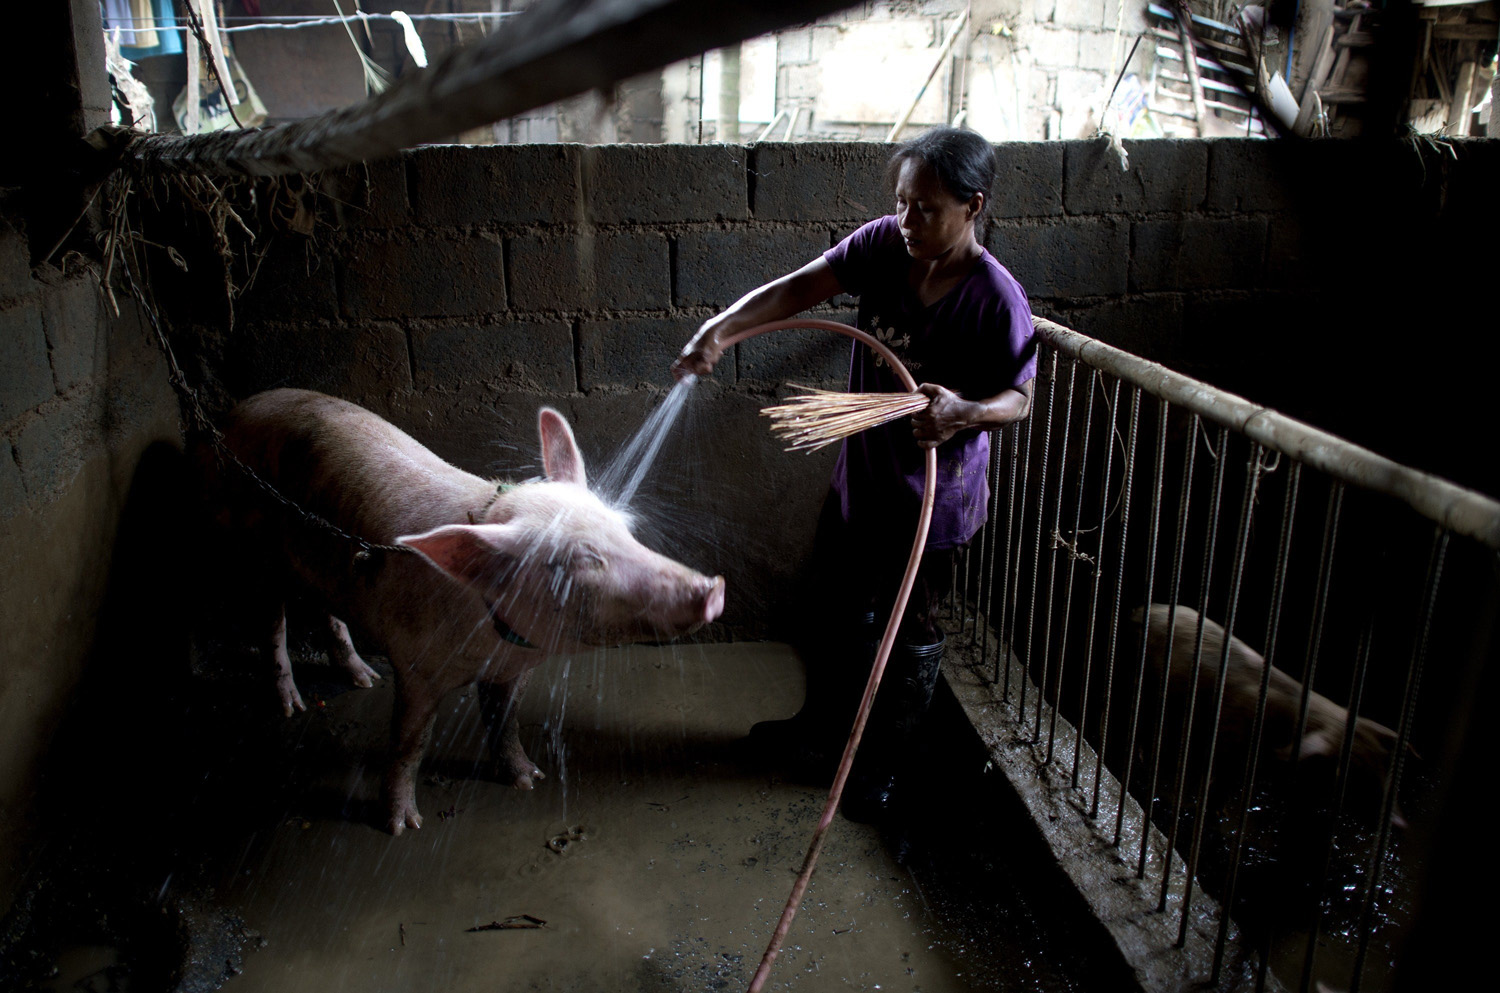 A woman sprays water on a pig inside a pig sty on the first floor of her house that was flooded in heavy rains brought by Tropical Storm Fung-Wong, at Banaba village in Marikina City, suburban Manila, on Sept. 21, 2014.